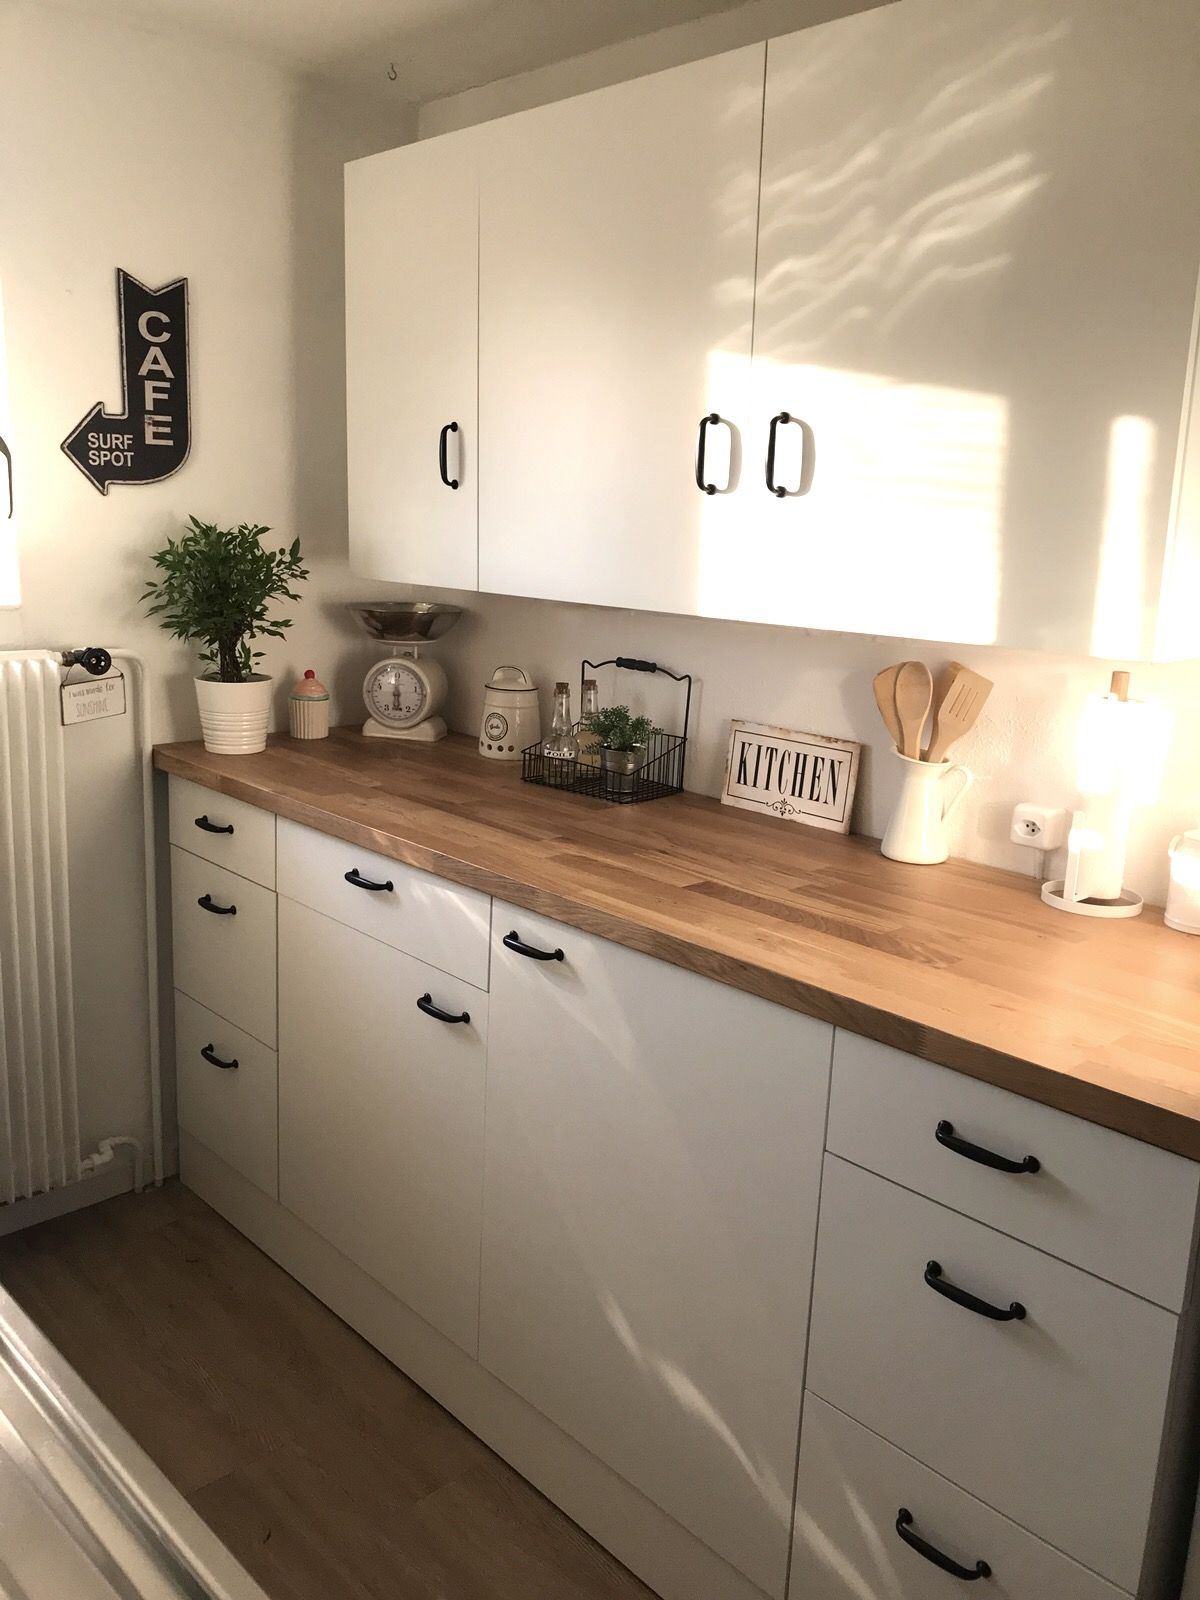 Ikea Spots Küche Küche Karlby Ikea Knoxhult Kitchen In 2019 Ikea Kitchen